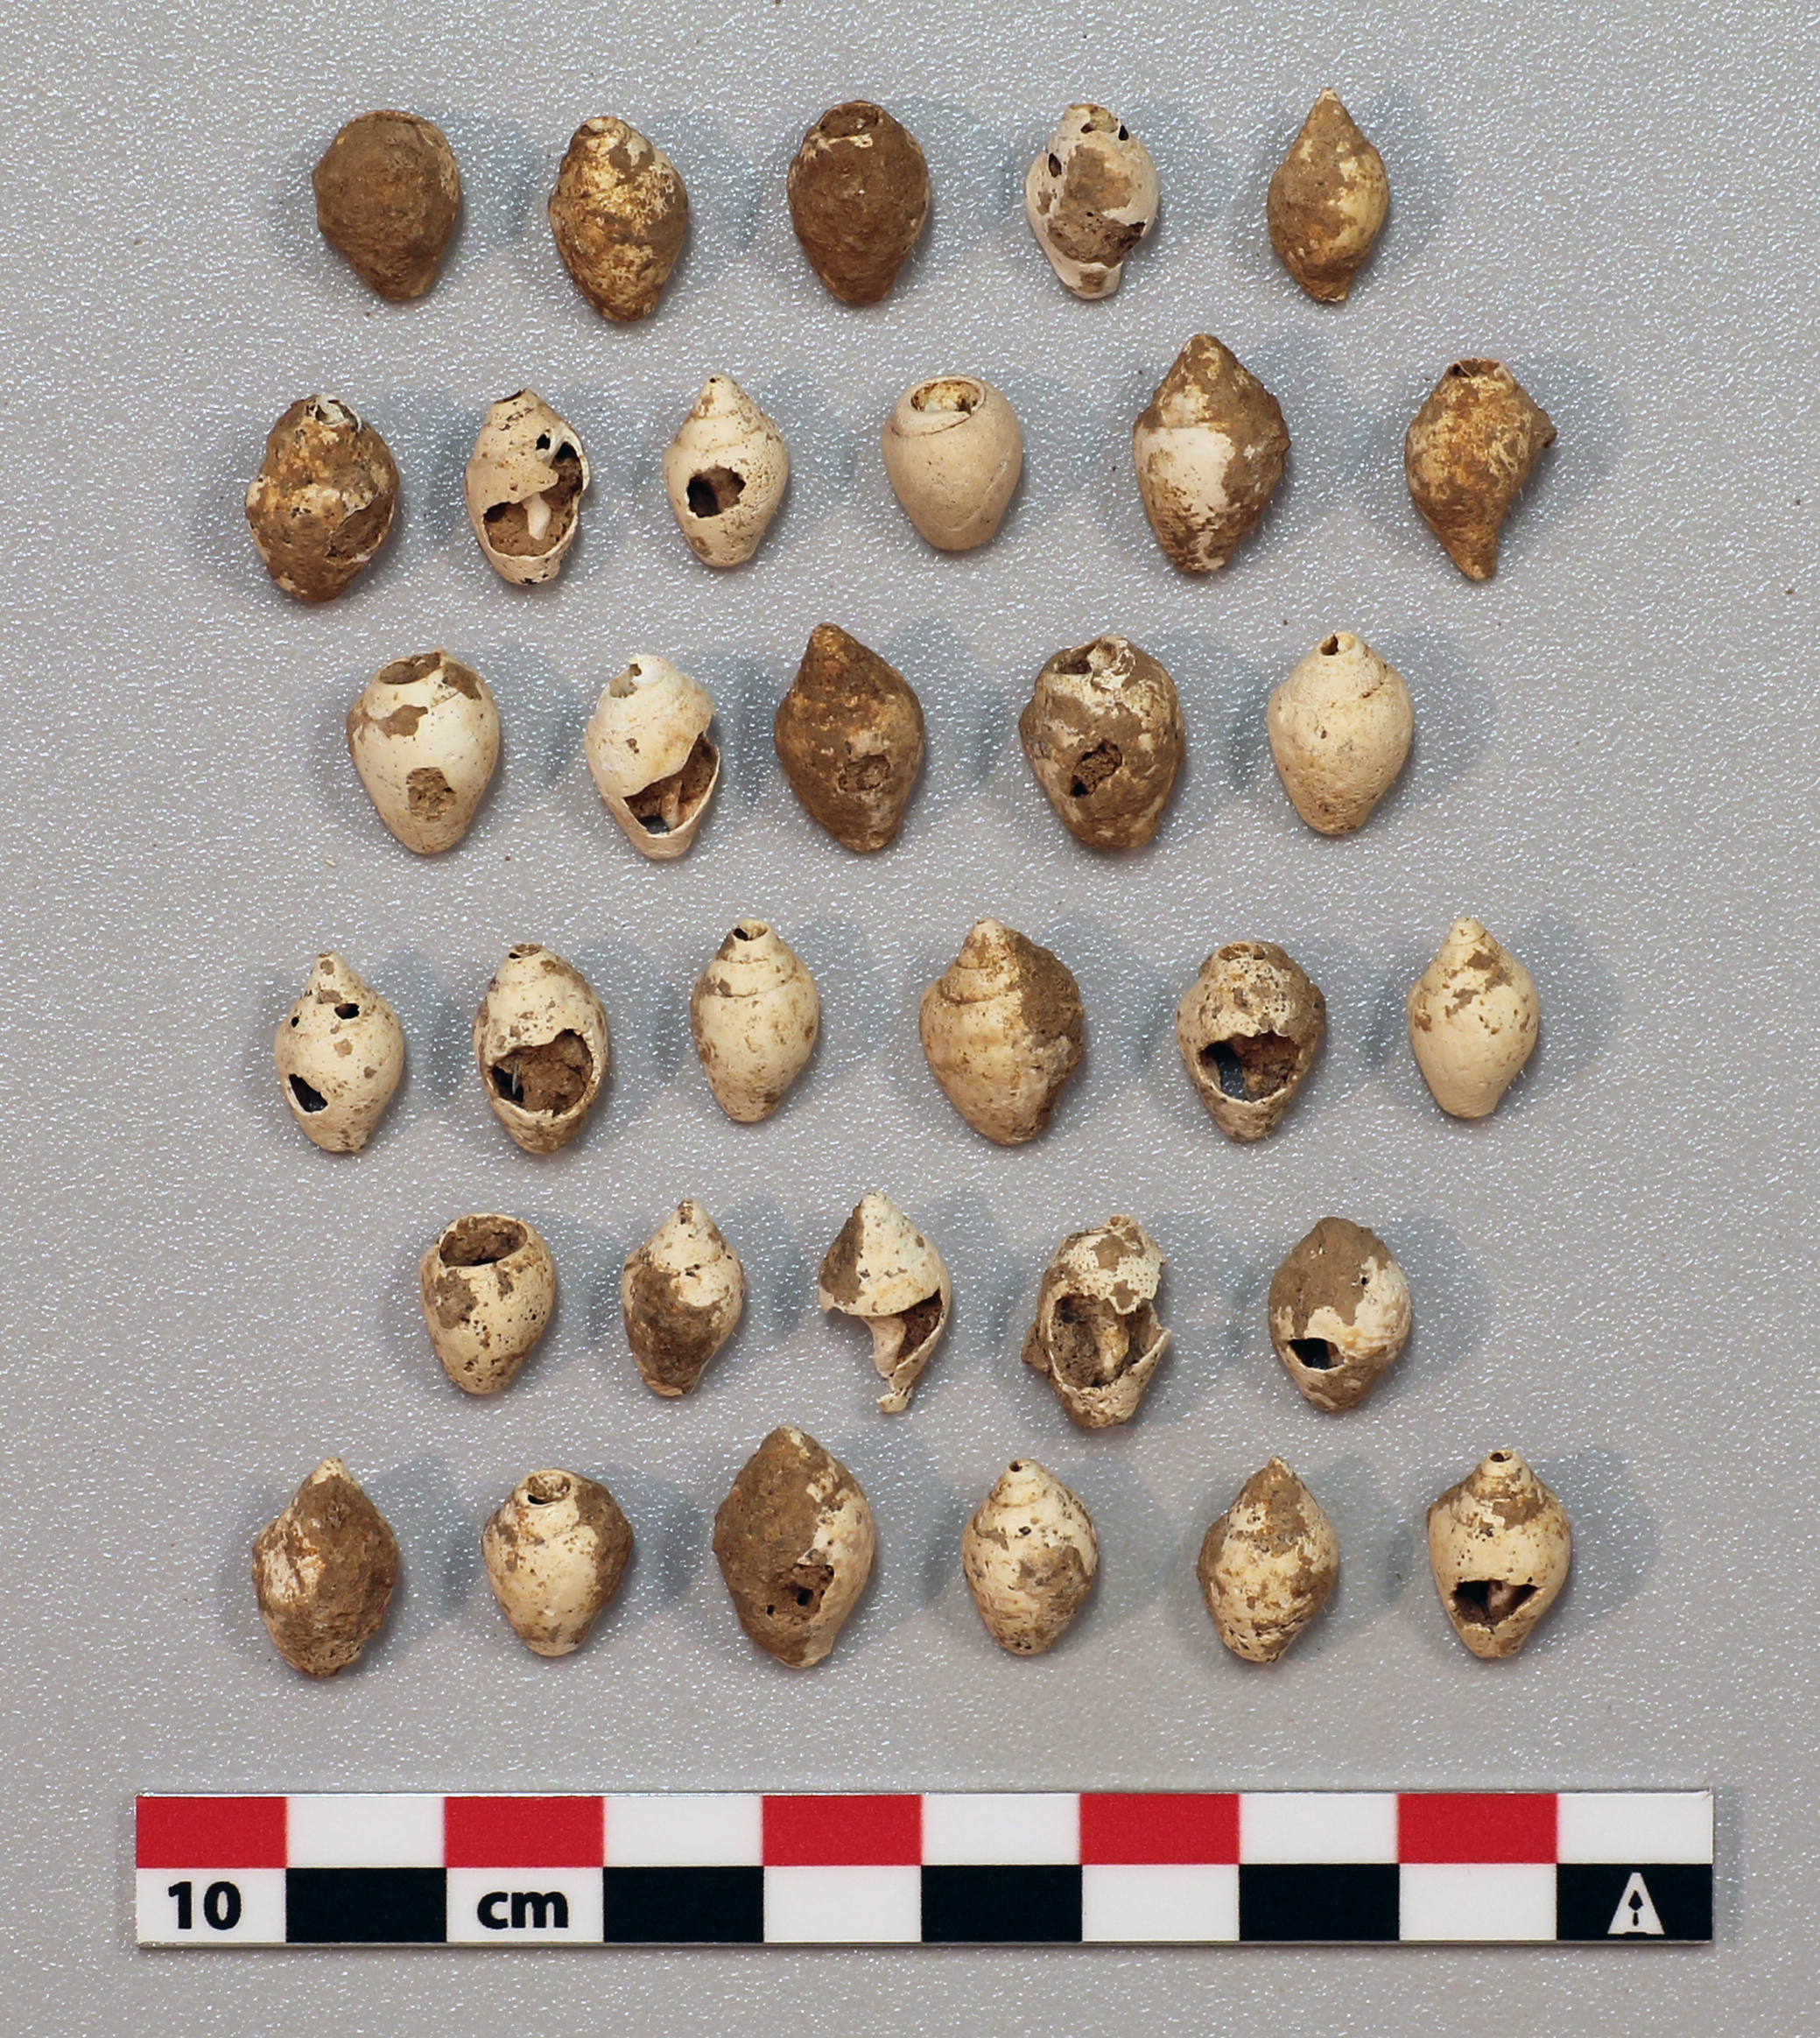 The Upper Paleolithic inhabitants of Sefunim Cave (Israel) collected shells from the Mediterranean coastline to use as ornaments.